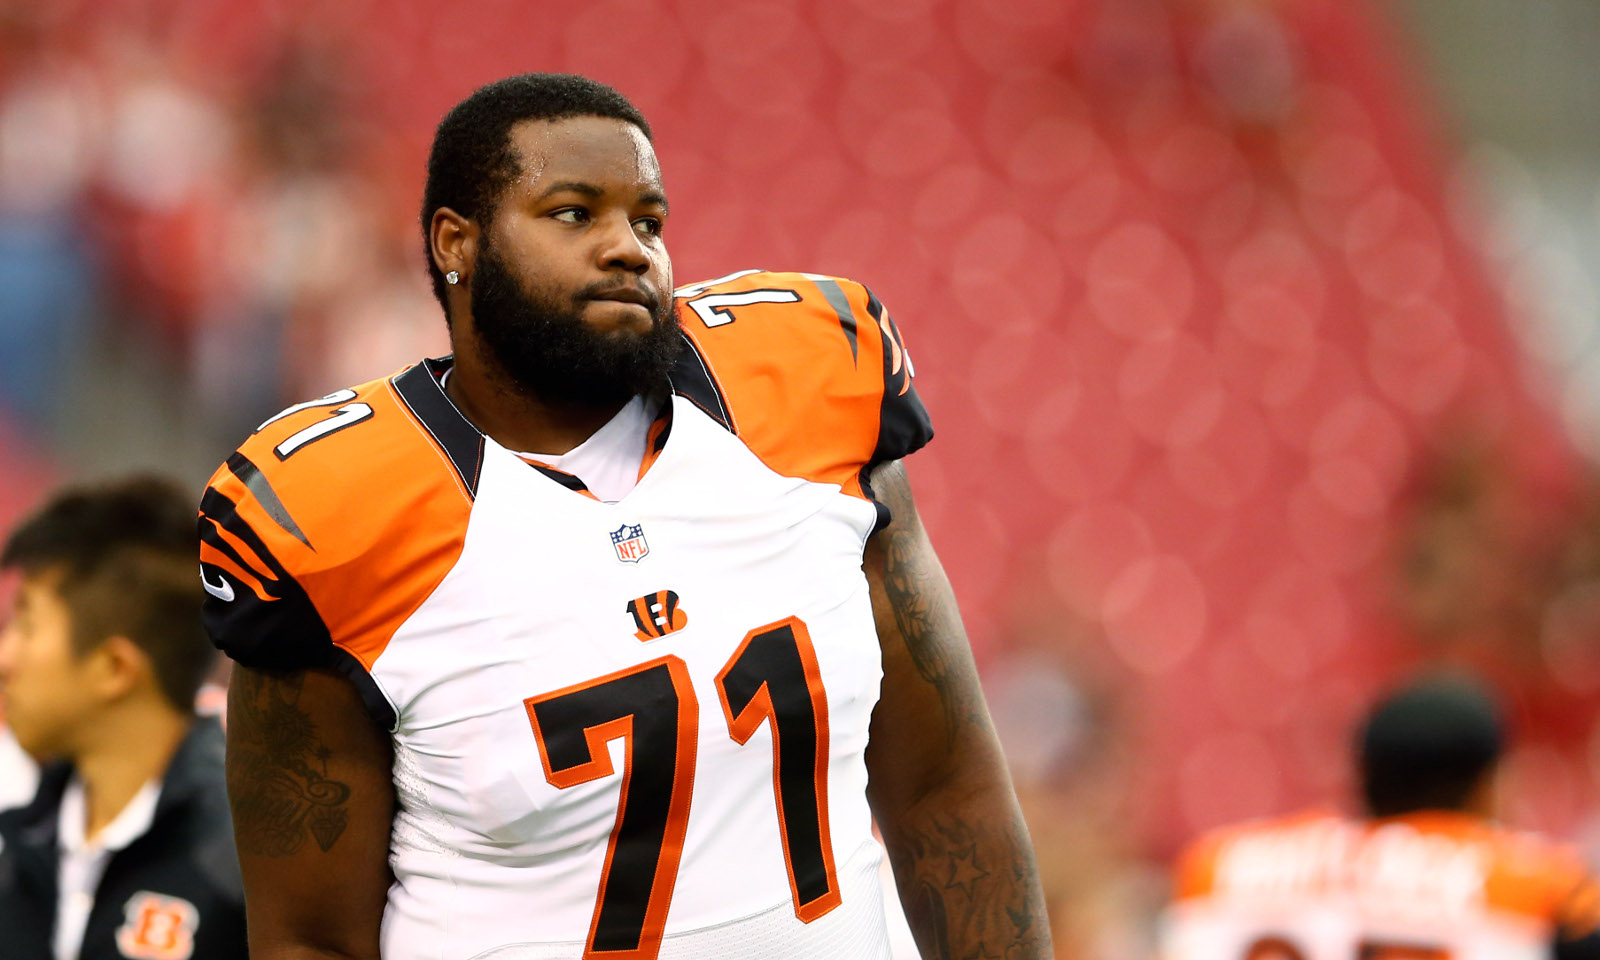 wholesale dealer 7d1f0 a5979 Alabama in NFL free agency: OT Andre Smith deciding between ...